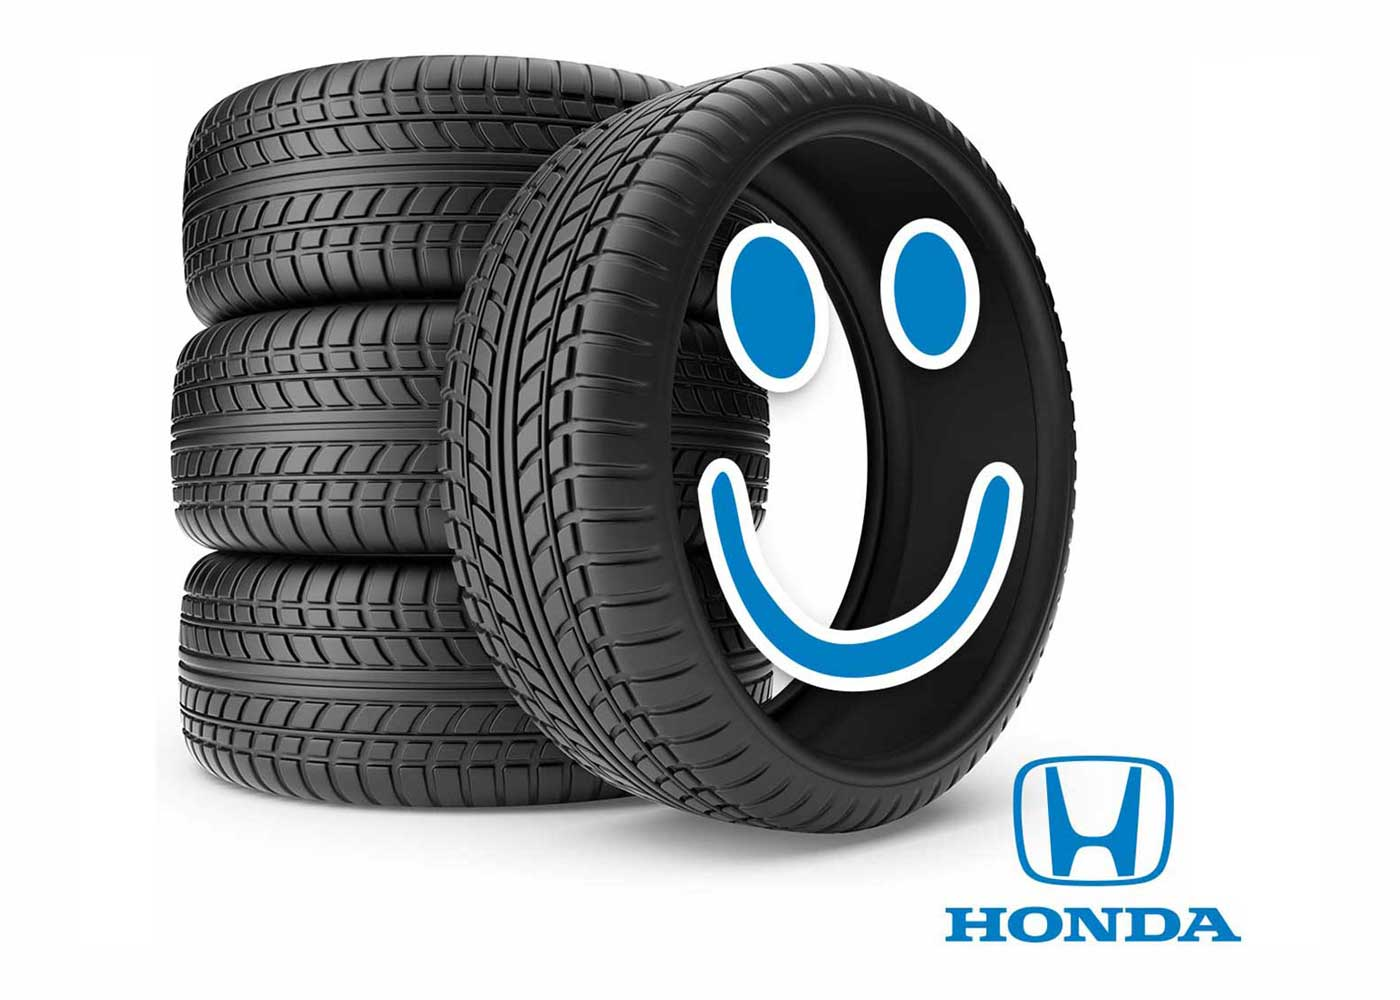 Dublin Honda Tire Center - Dublin Honda